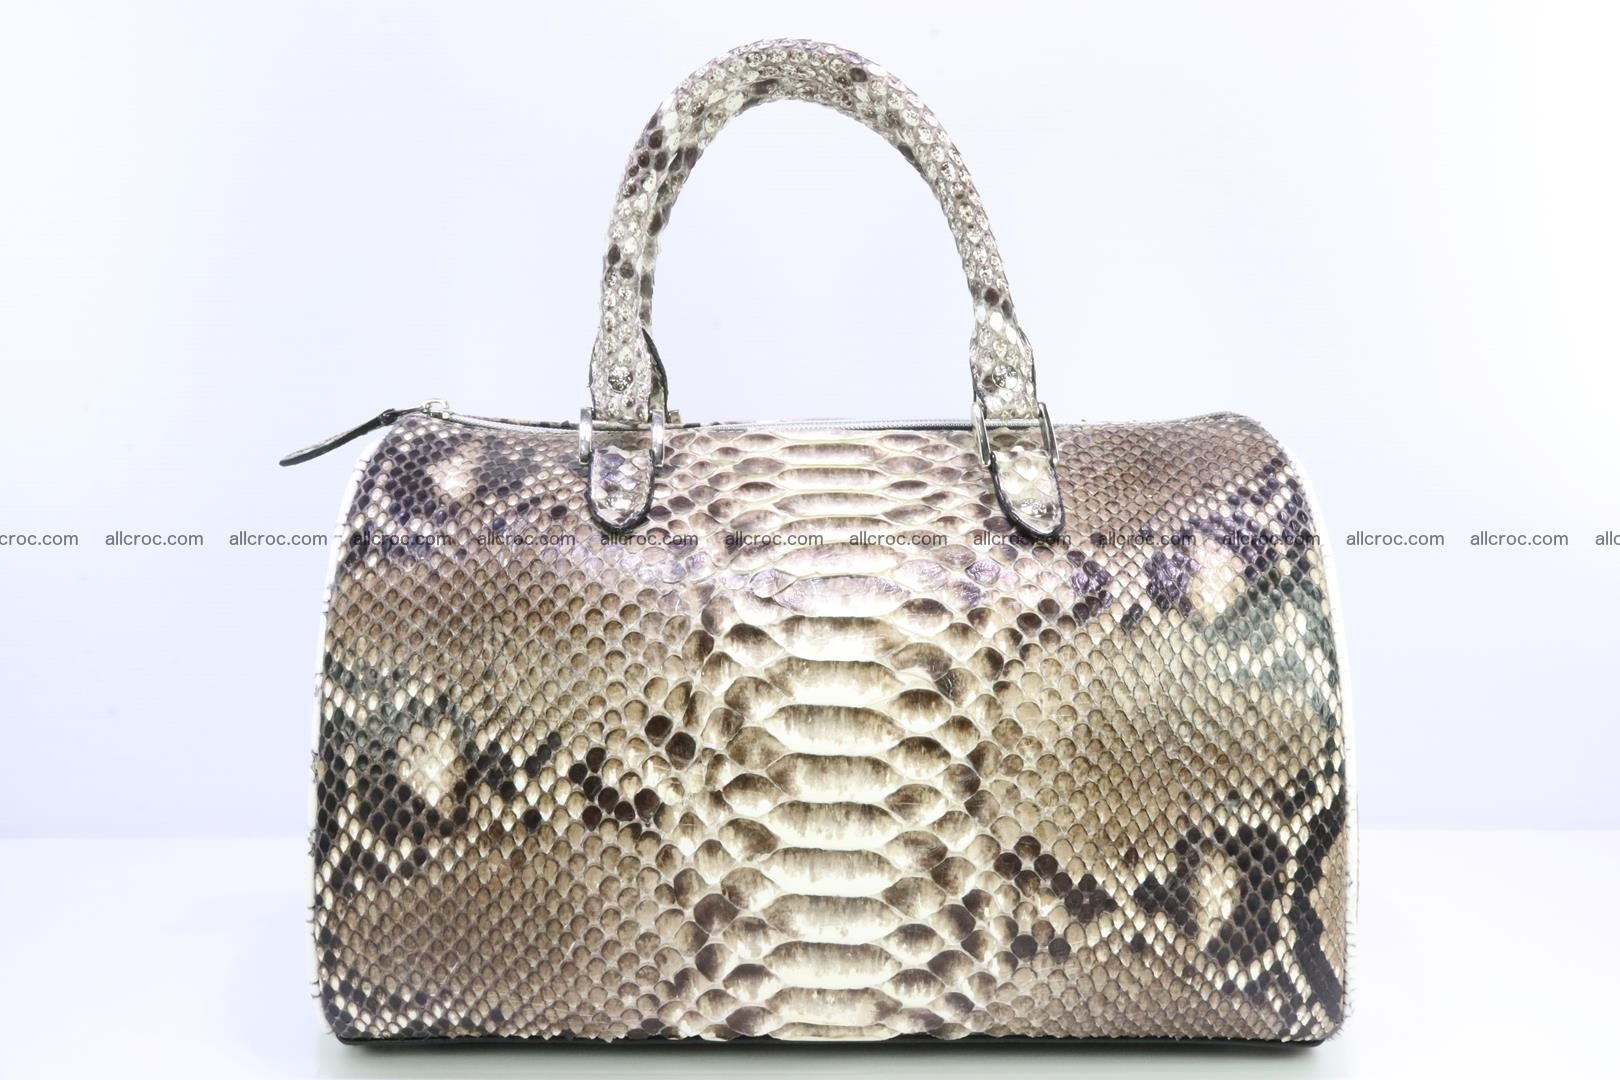 Ladies handbag, valise from genuine python skin 208 Foto 0